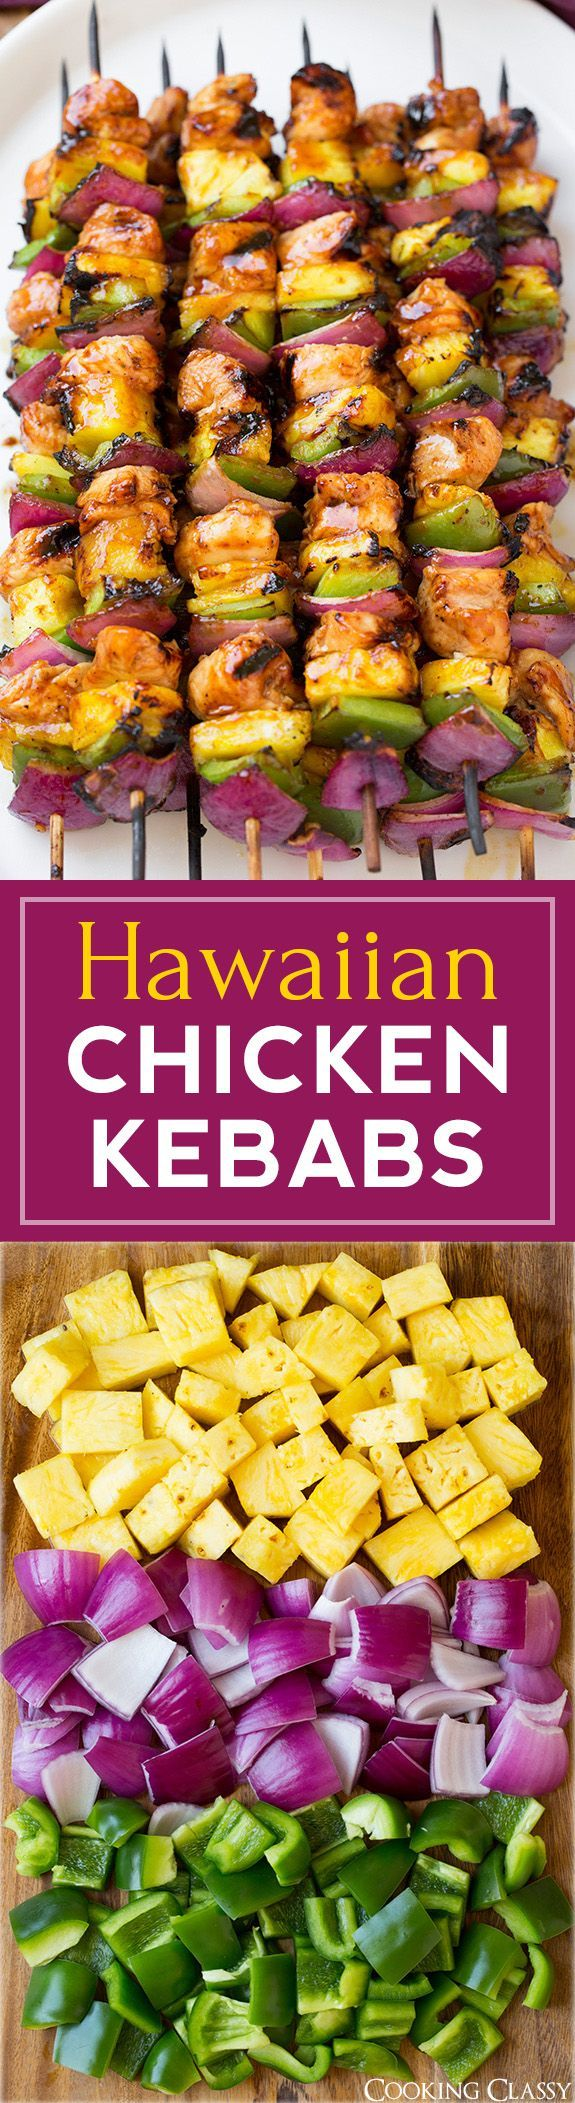 Hawaiian Chicken Kebabs - these are incredibly DELICIOUS! Perfect for a summer meal.